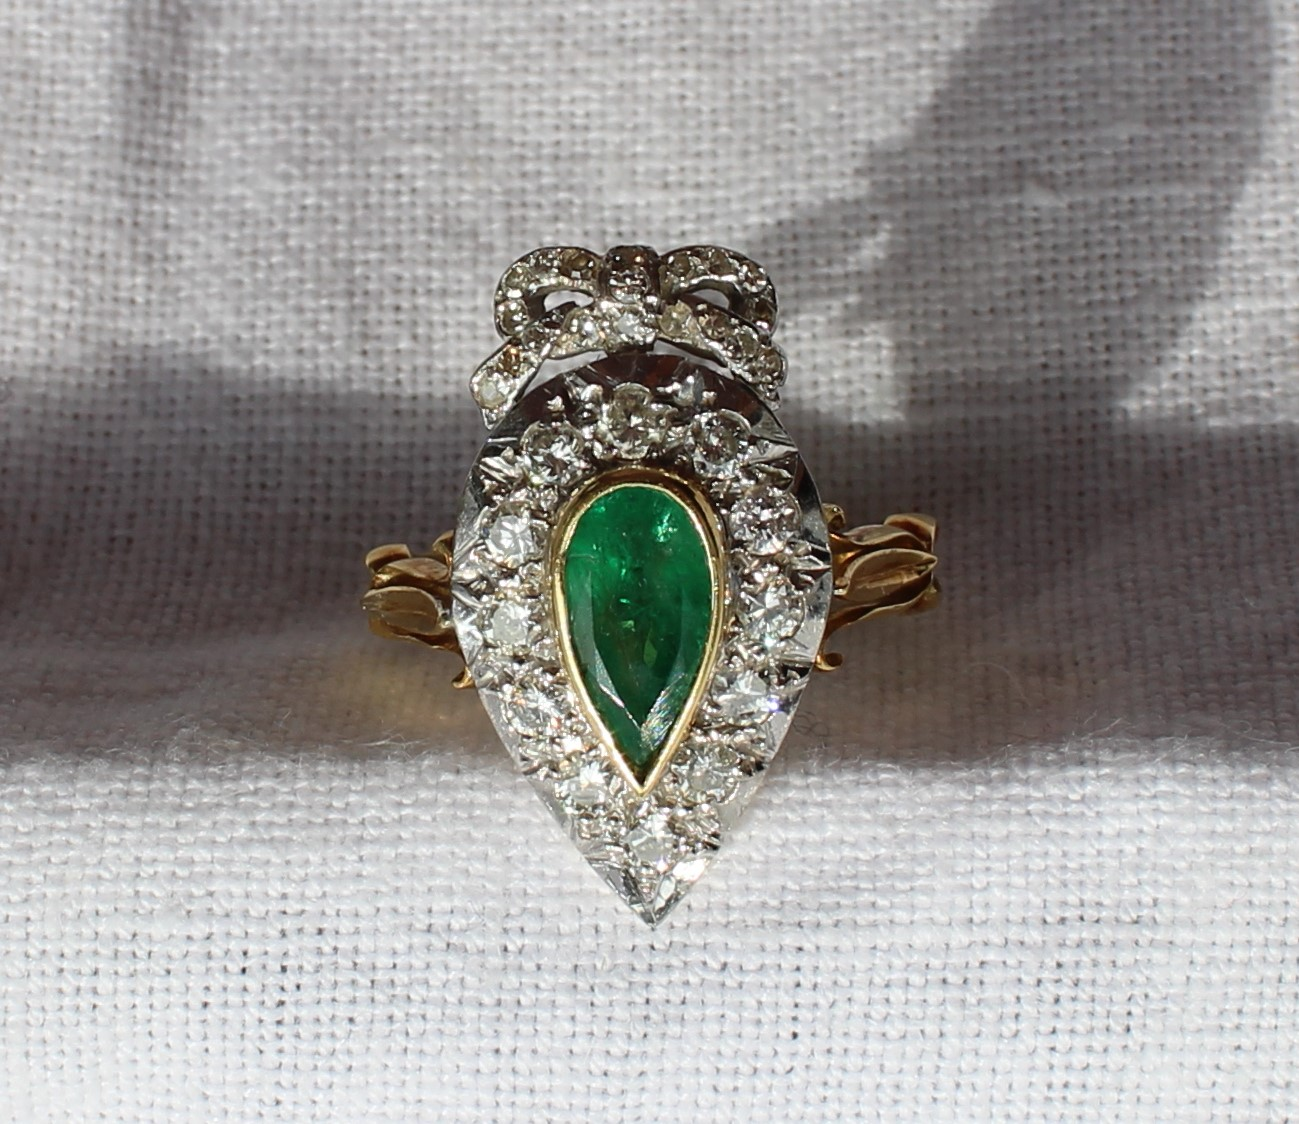 Lot 85 - Estimates: £300 - 400 - An emerald and diamond ring of heart shape, the pointed oval emerald approximately 10mm x 5mm surrounded by twelve round old cut diamonds with a diamond set bow cresting to a white metal setting and a yellow metal shank marked 18